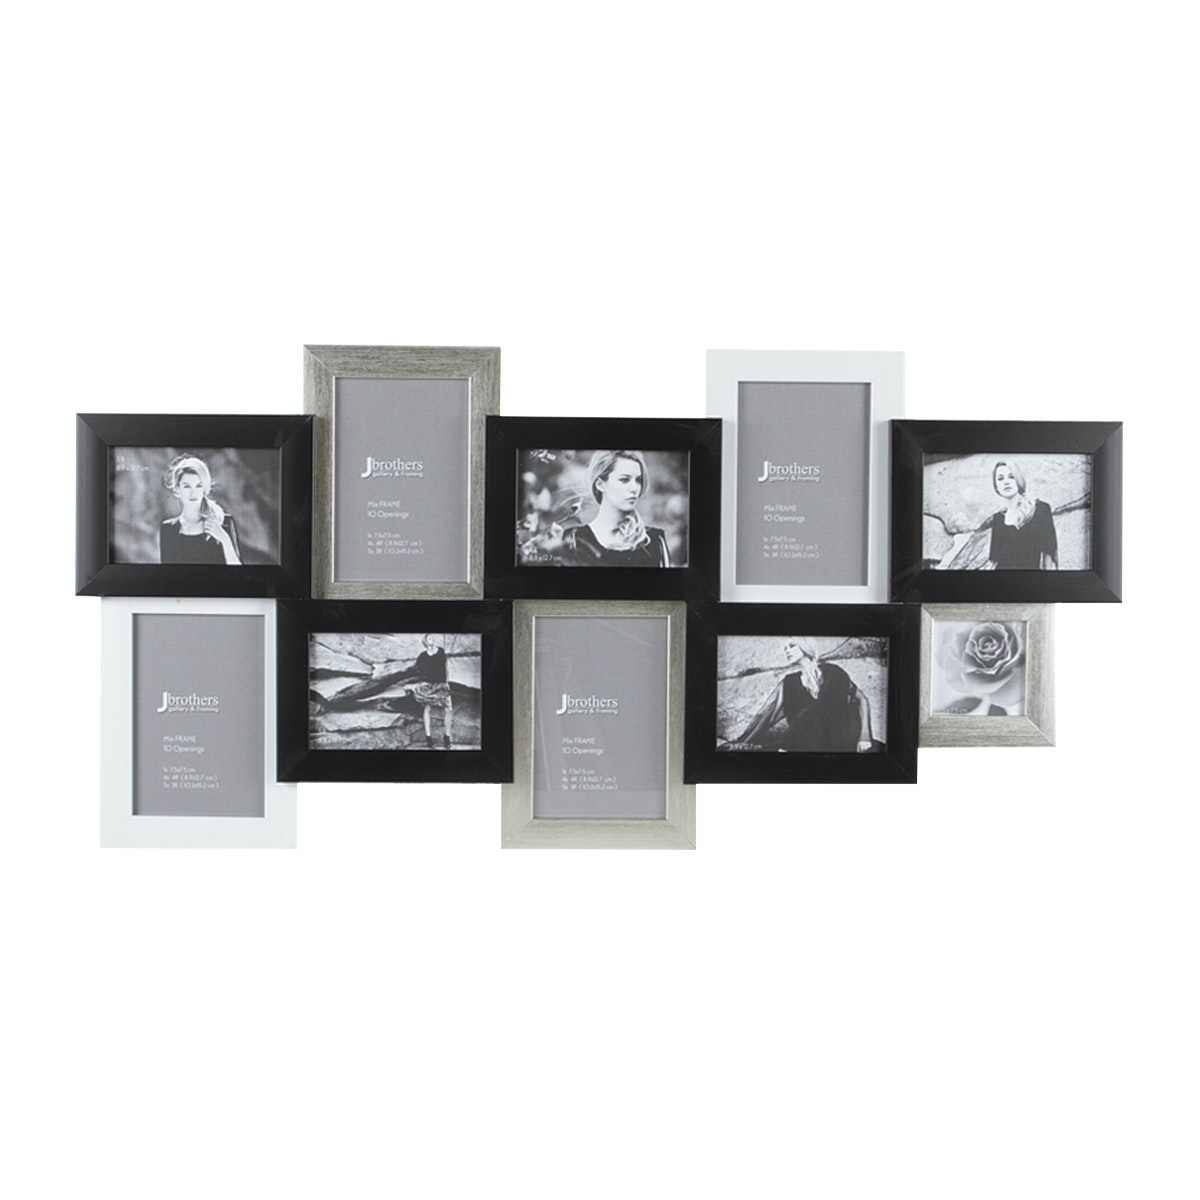 Jbrothers Mix Frame 10 openings Silver Black & White MF12